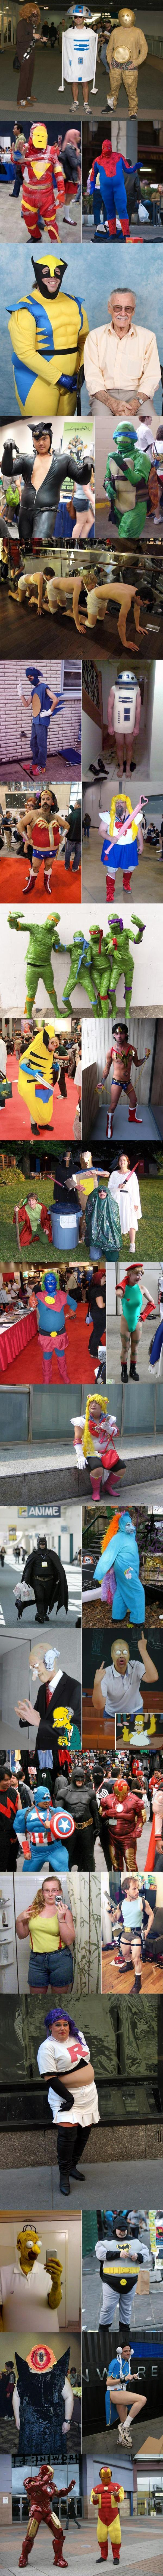 Horrible Cosplay Fails By Diediebydie Meme Center